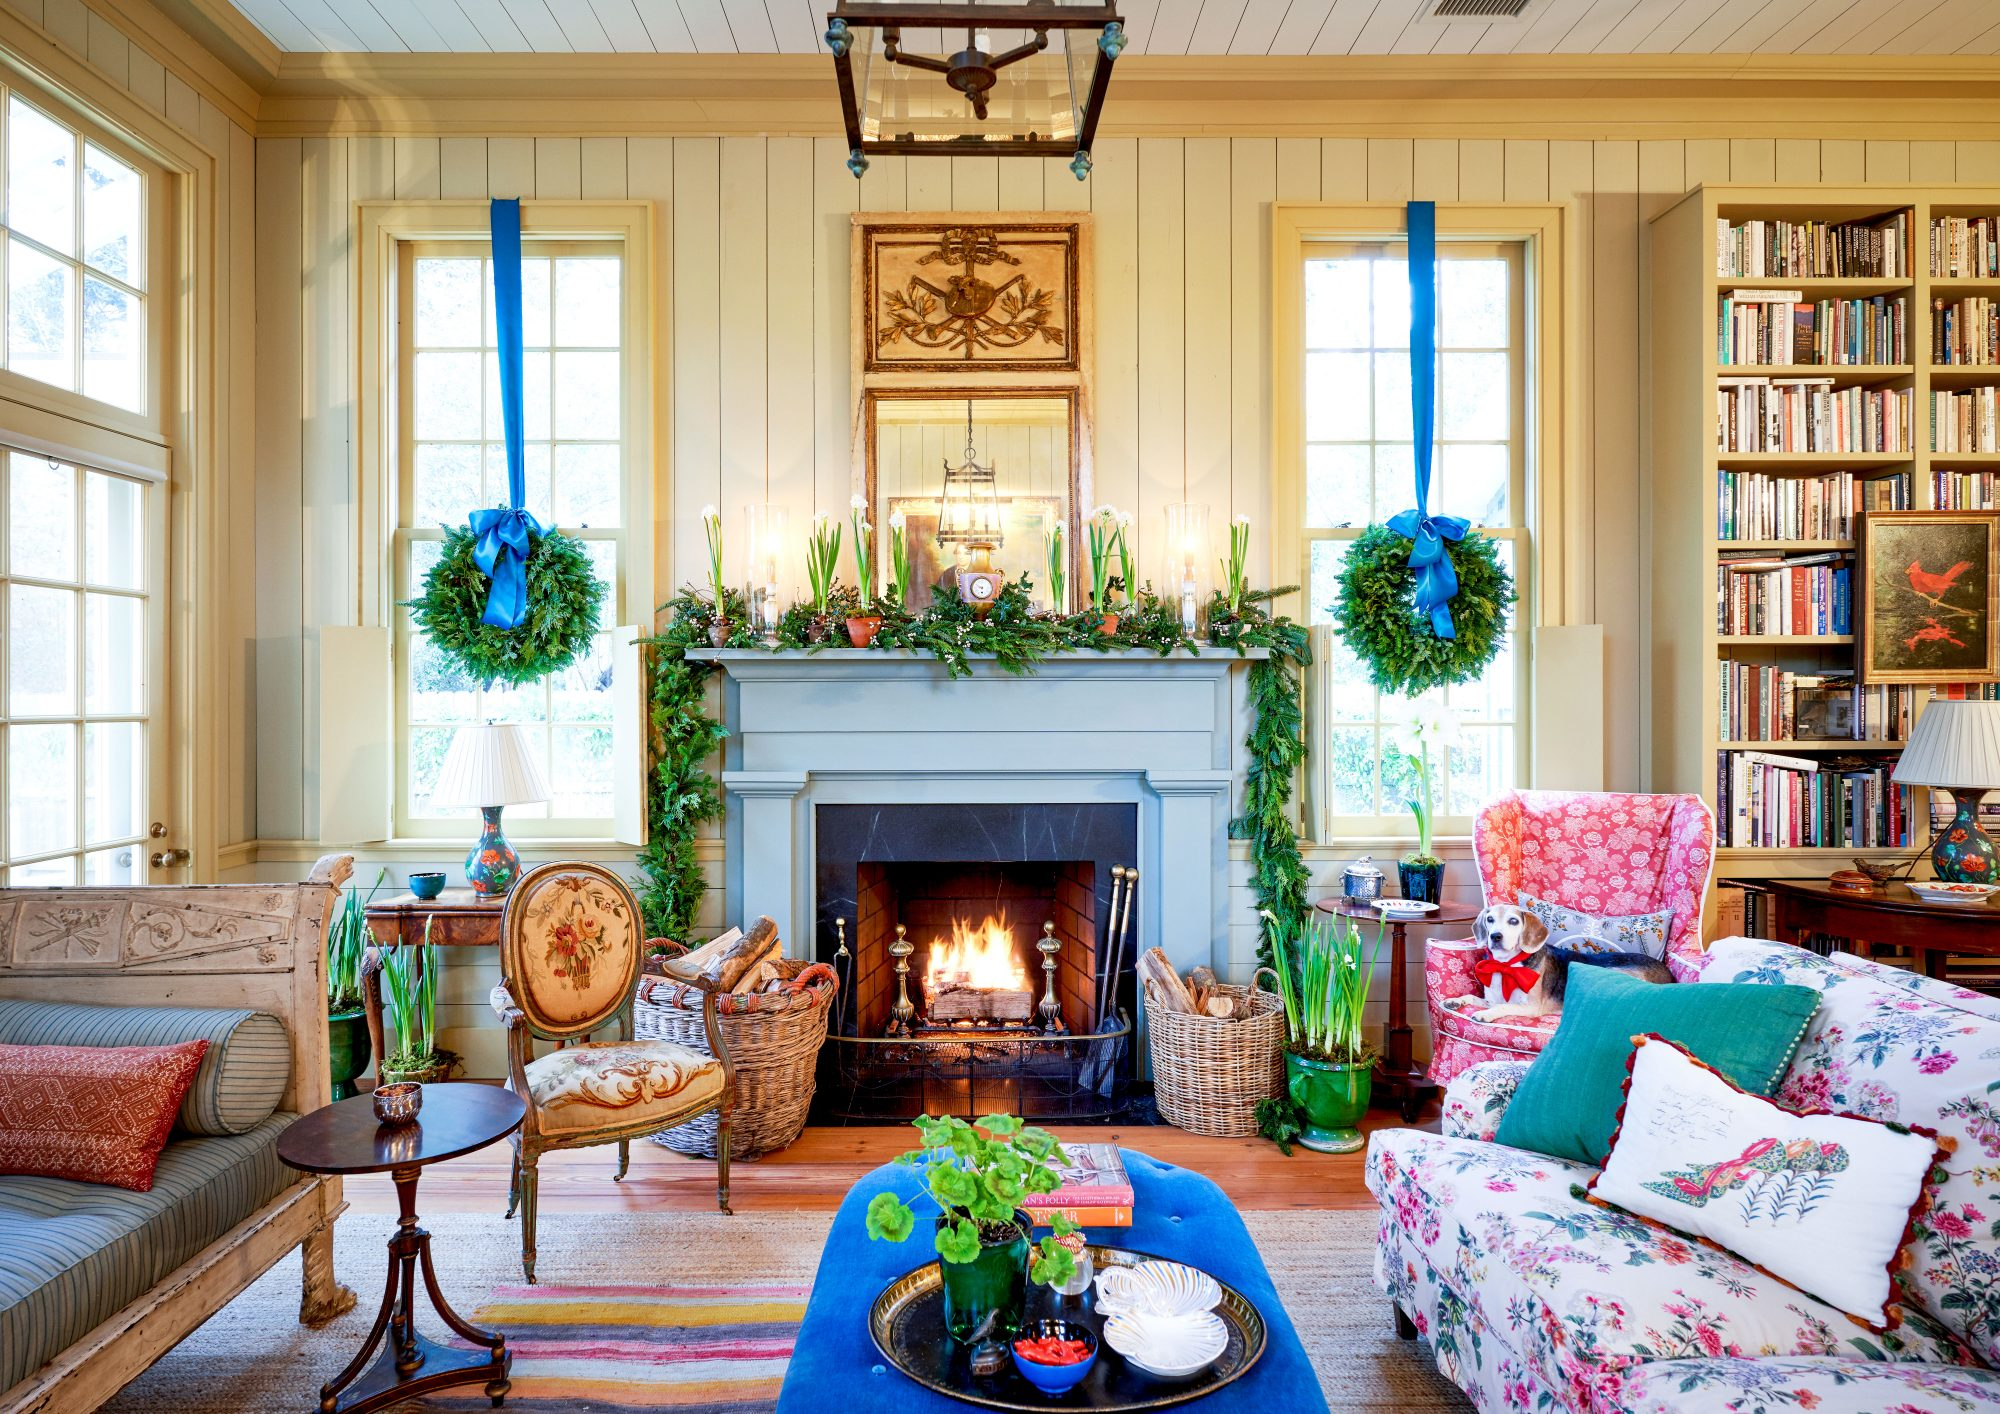 Living Room decorated for Christmas with wreaths in the windows and garland on the mantel